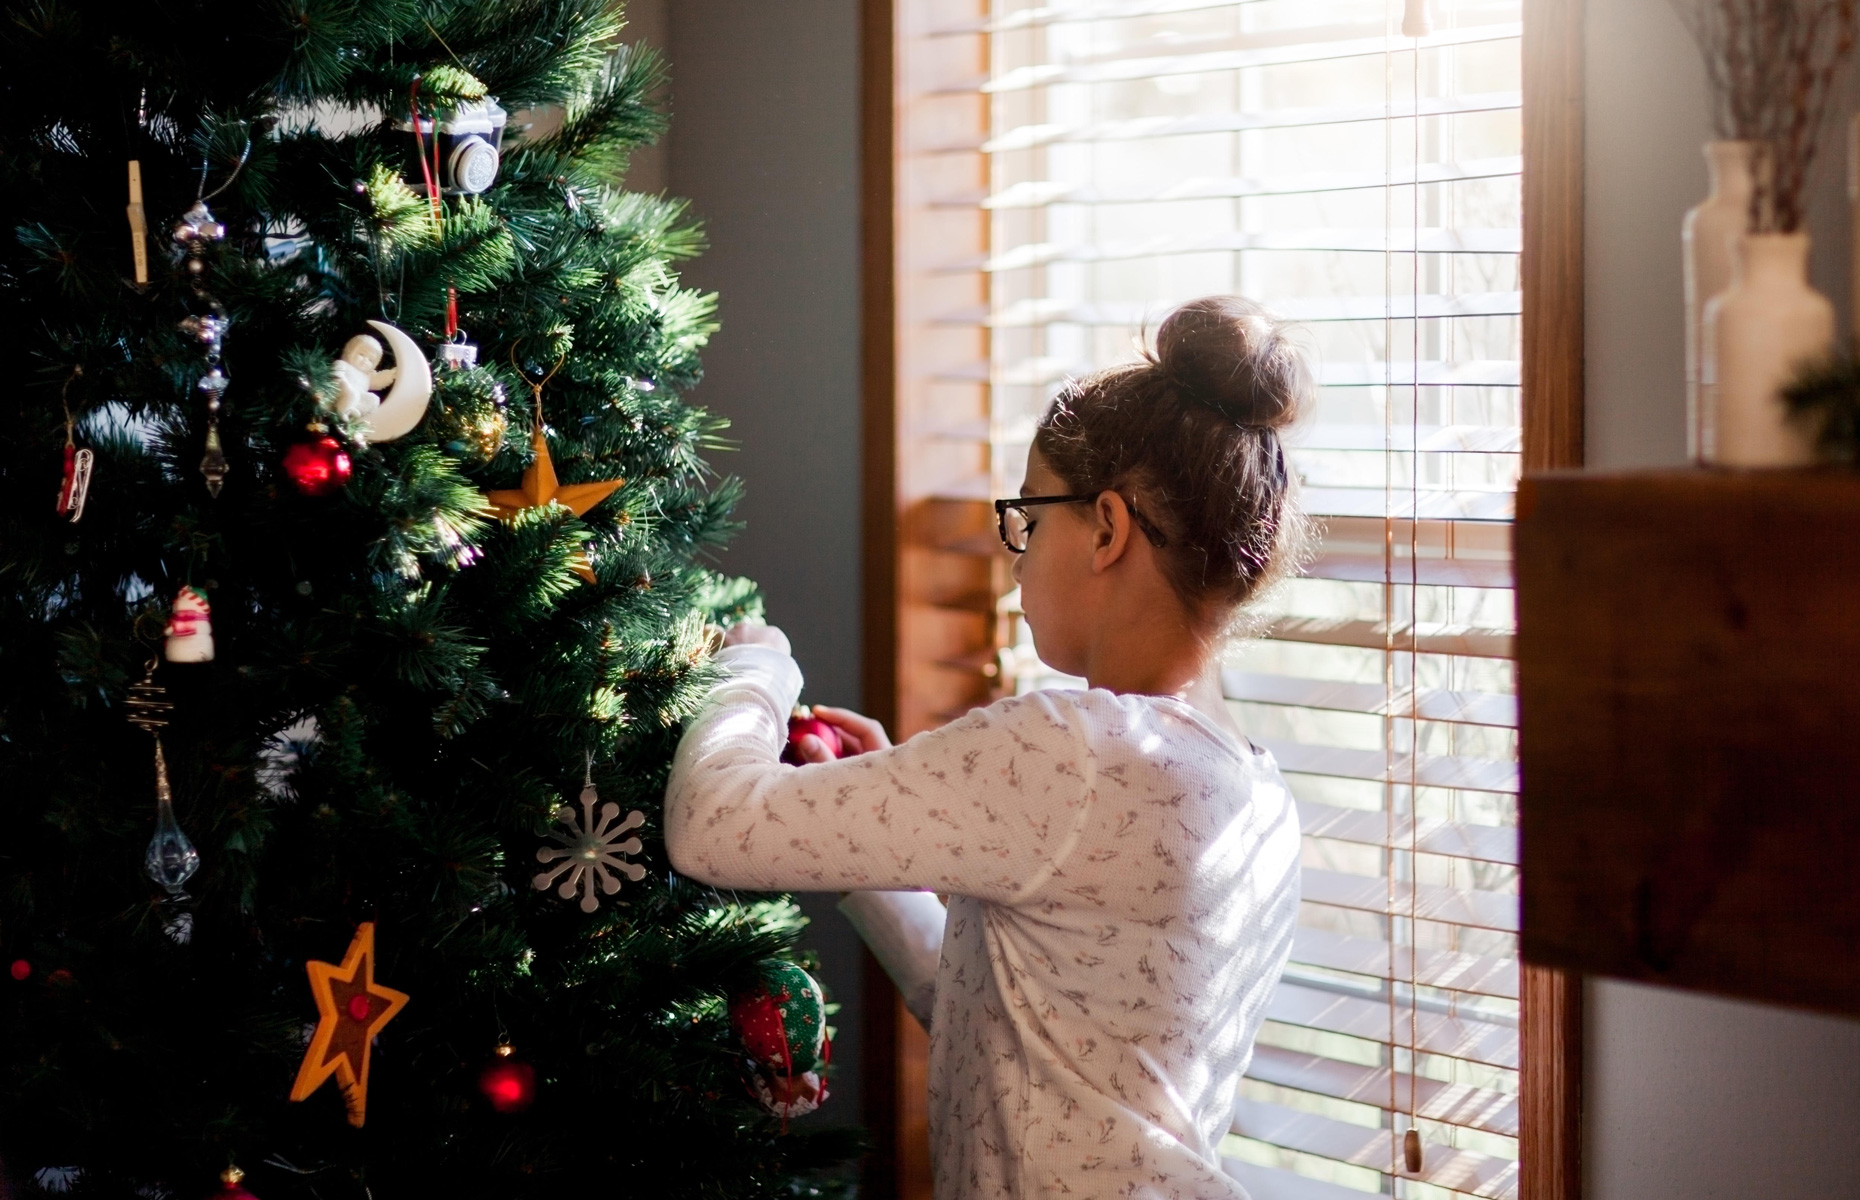 Best Christmas Trees 2020 Where To Buy The Best Real And Artificial Trees